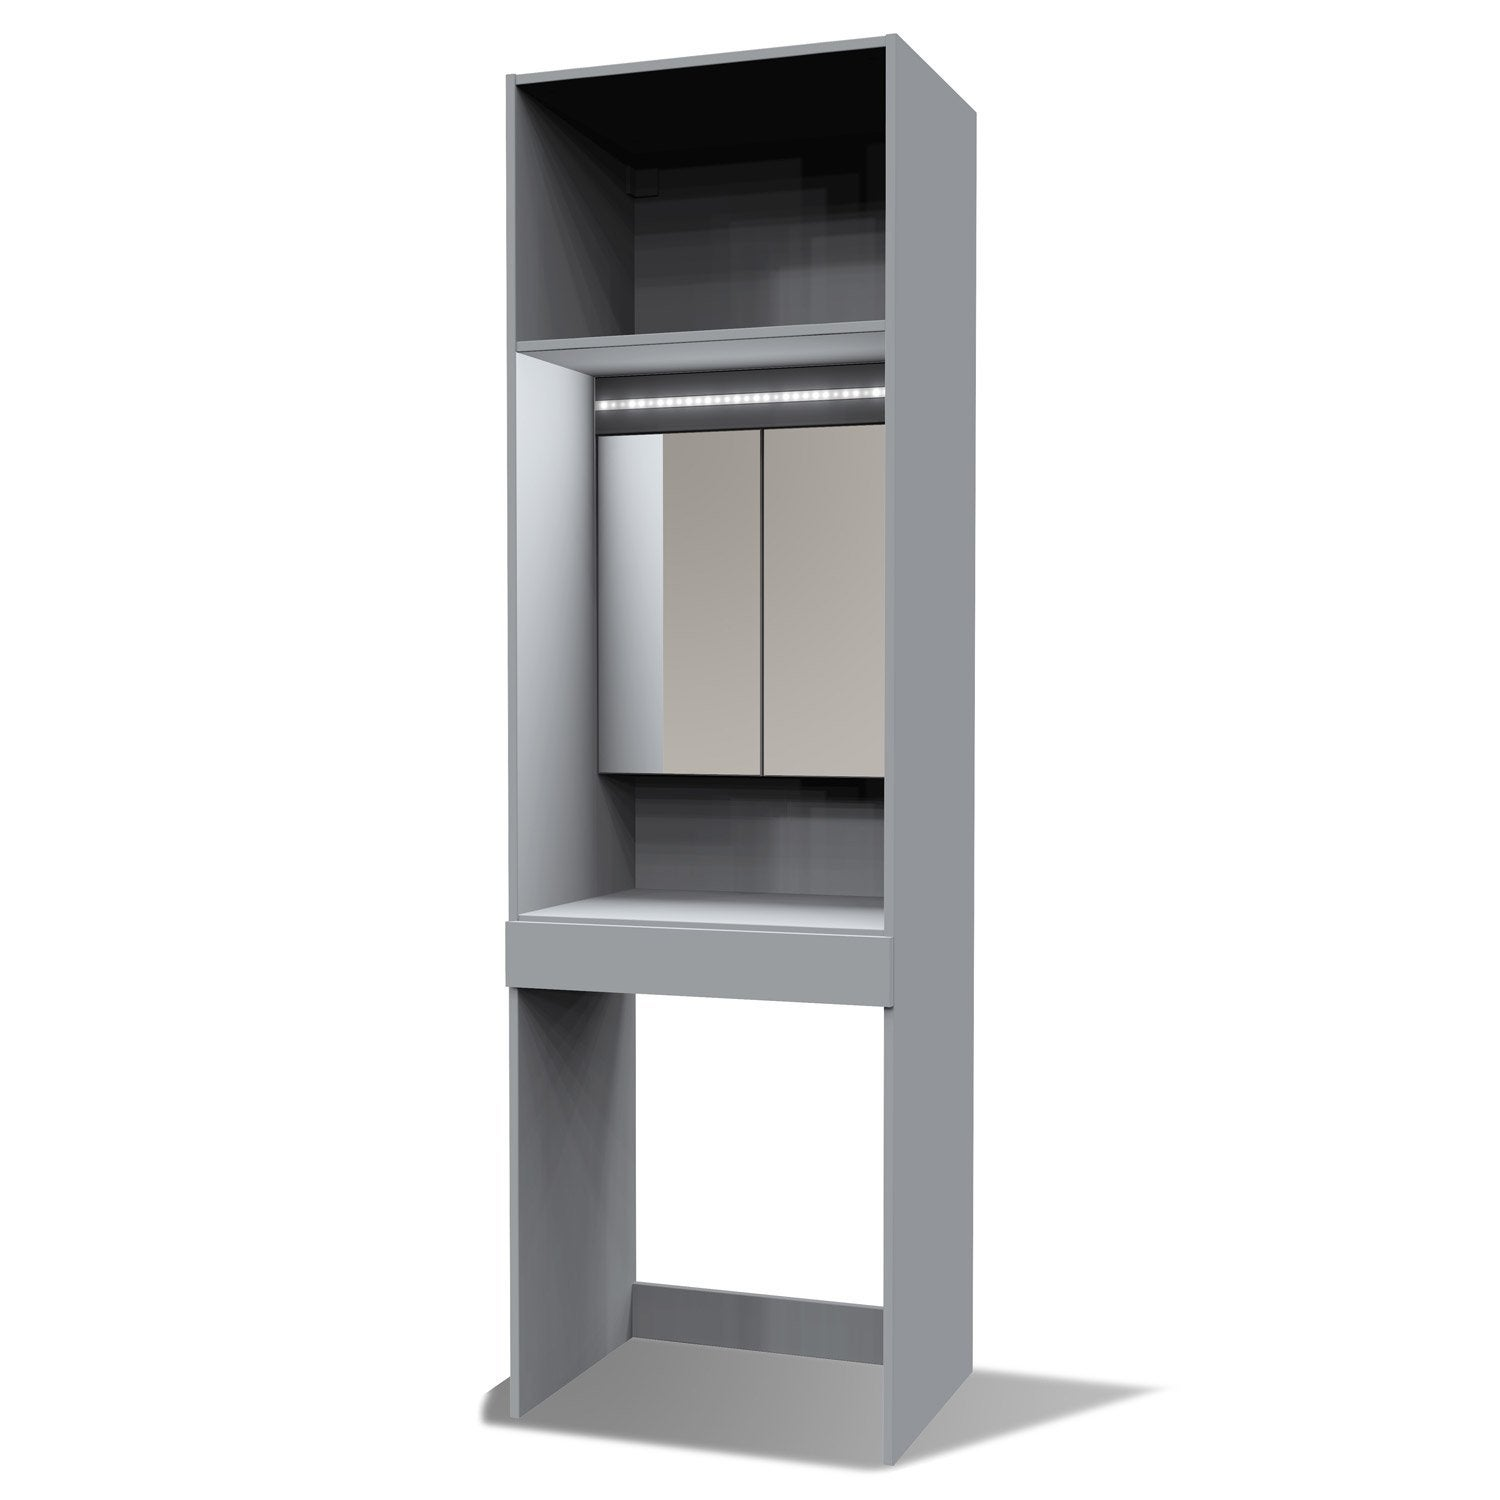 Caisson coiffeuse SPACEO Home 200 x 60 x 45 cm, gris | Leroy Merlin